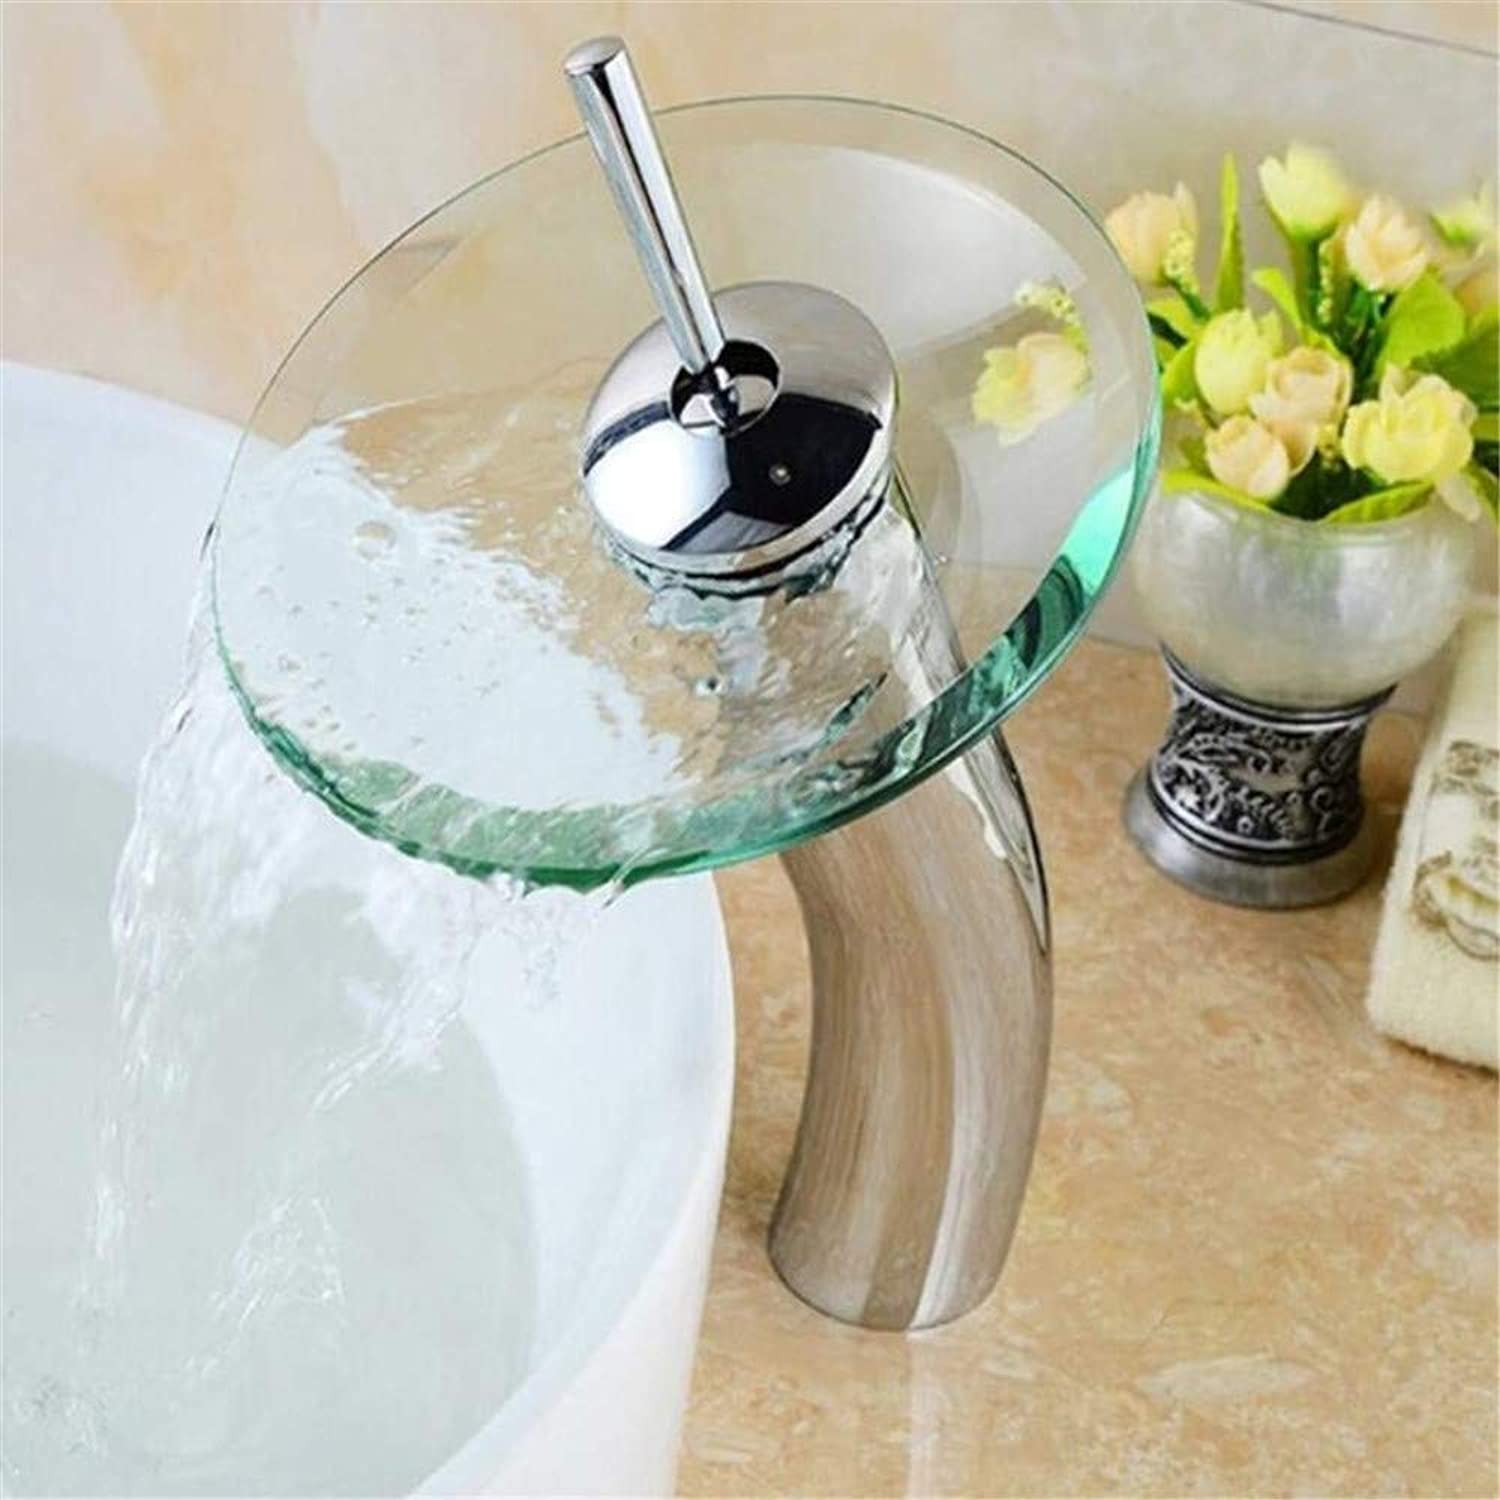 Brass Chrome Hot and Cold Water Rbathroom Waterfall Faucet Transparent Vessel Water Faucet Bathroom Basin Sink Mixer Tap